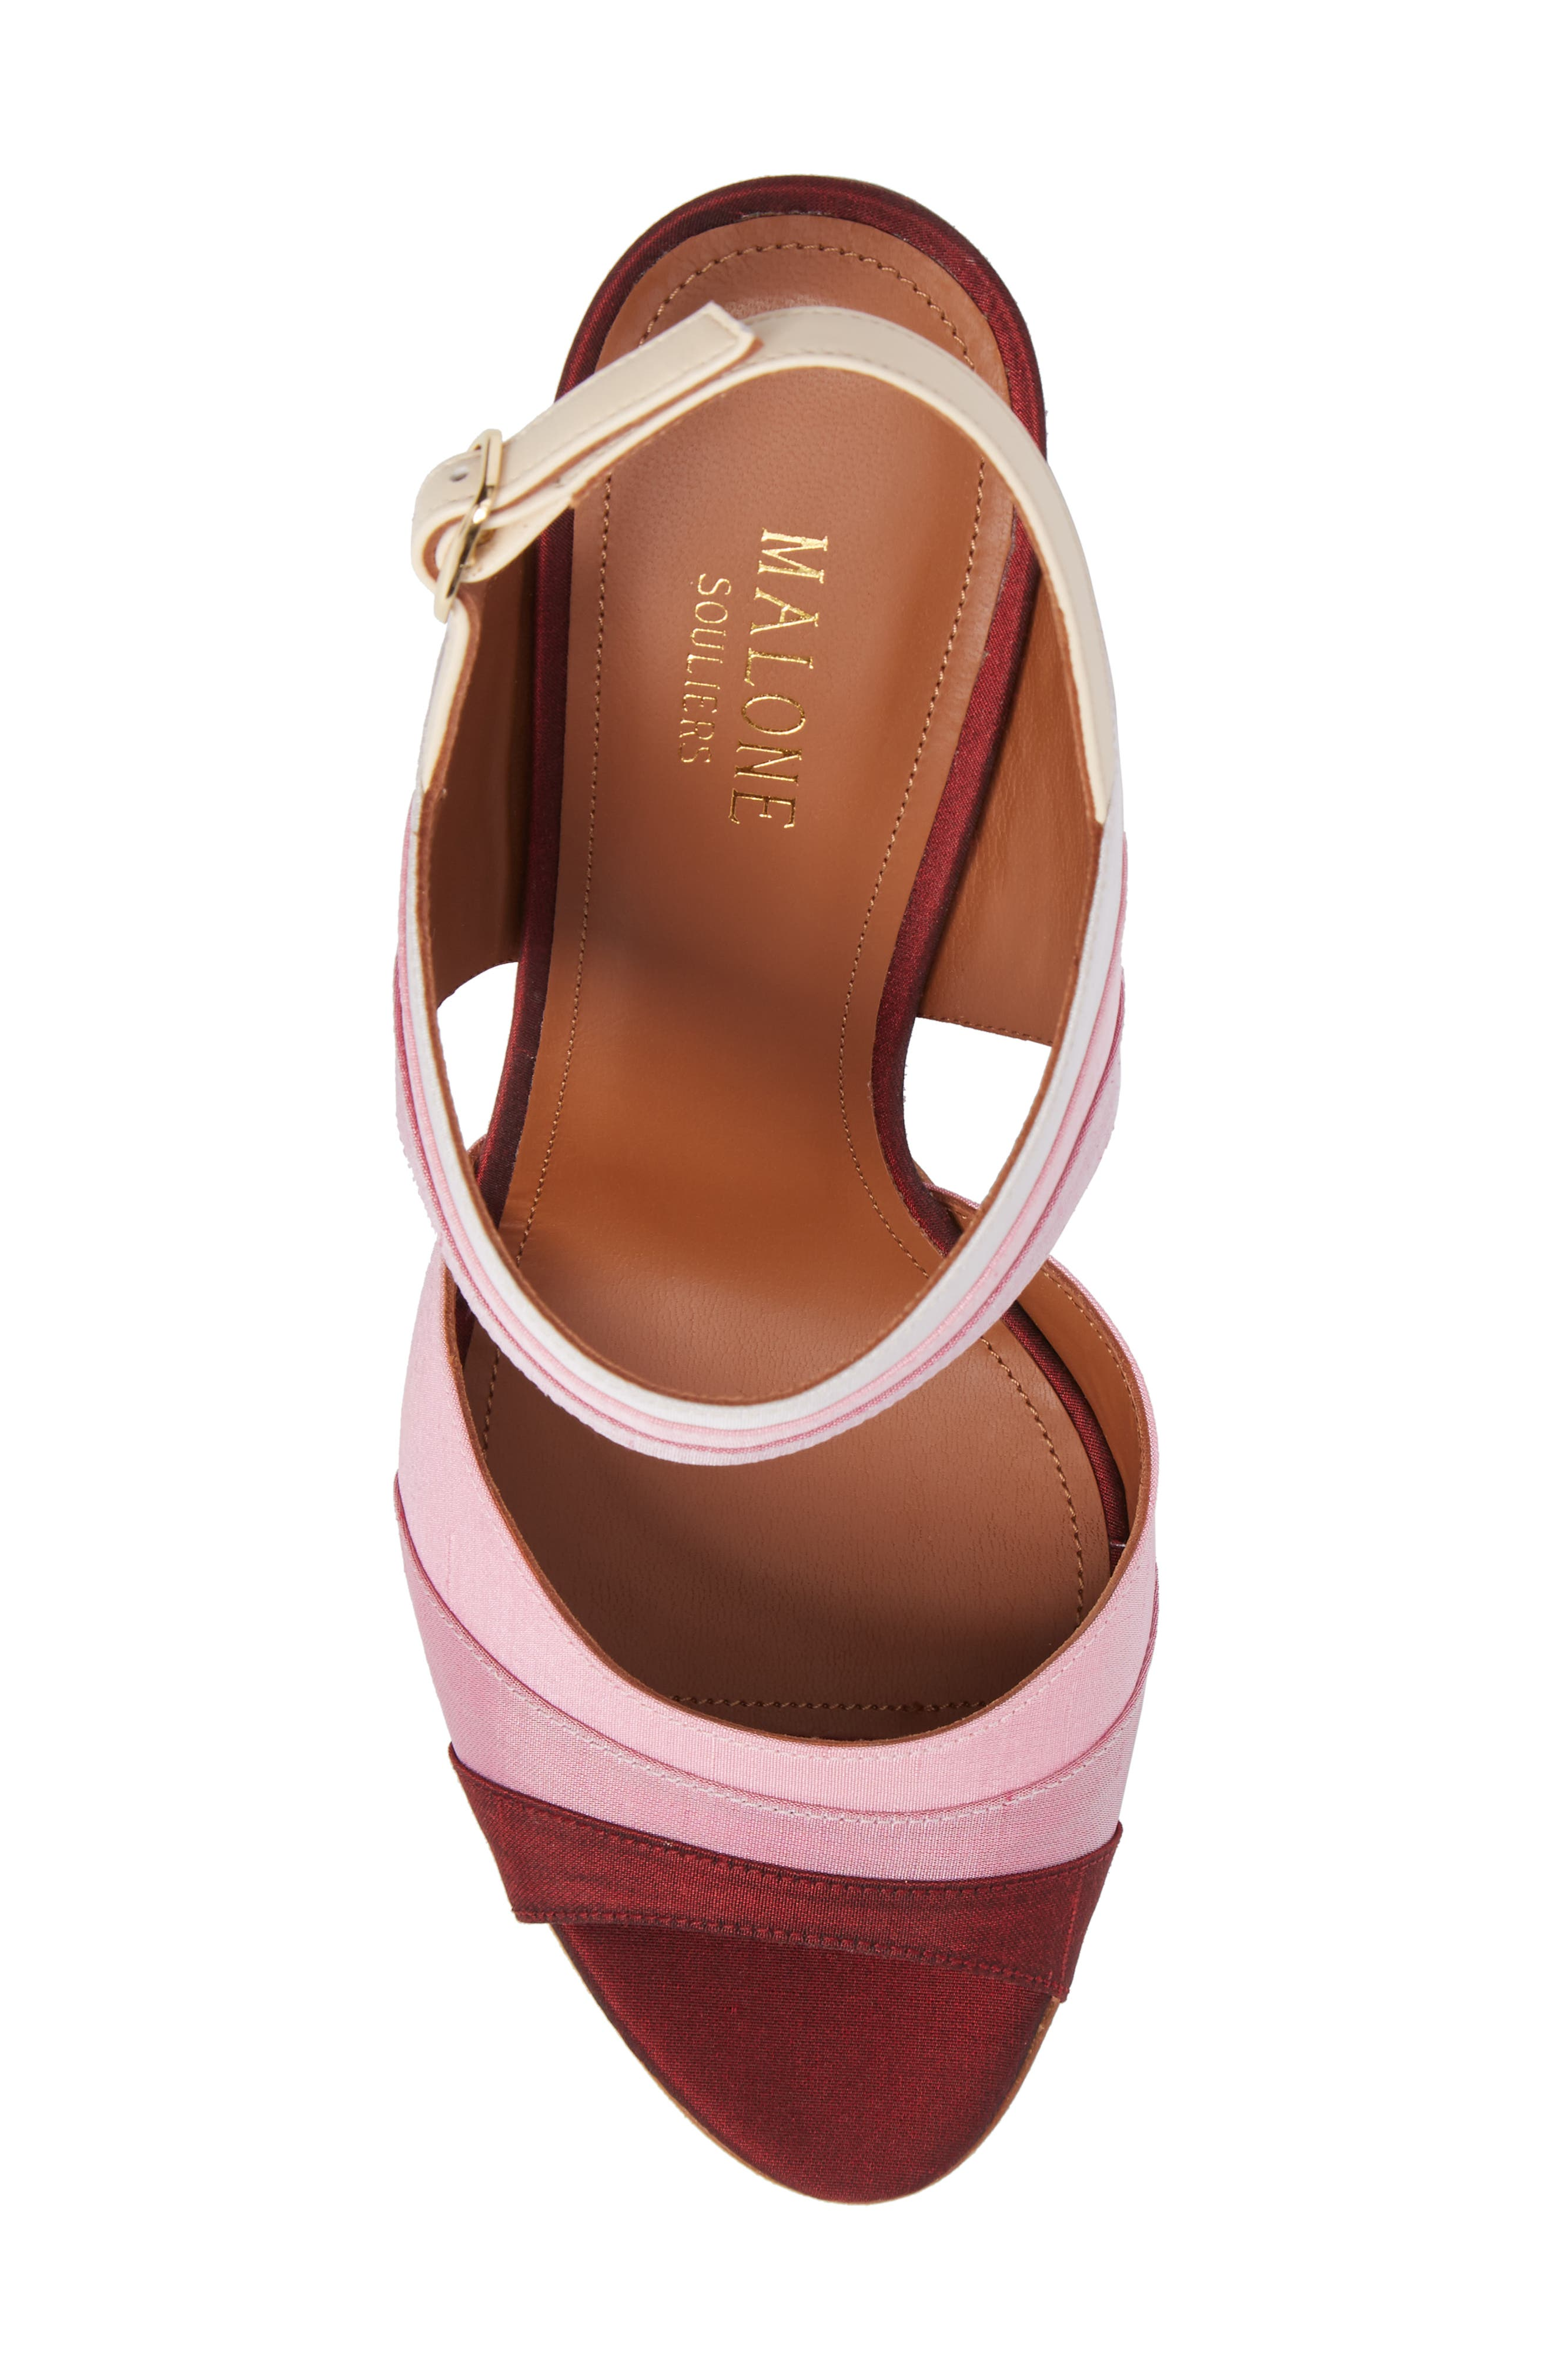 Anita Ombré Slingback Sandal,                             Alternate thumbnail 5, color,                             Peach/ Rose/ Berry/ Wine